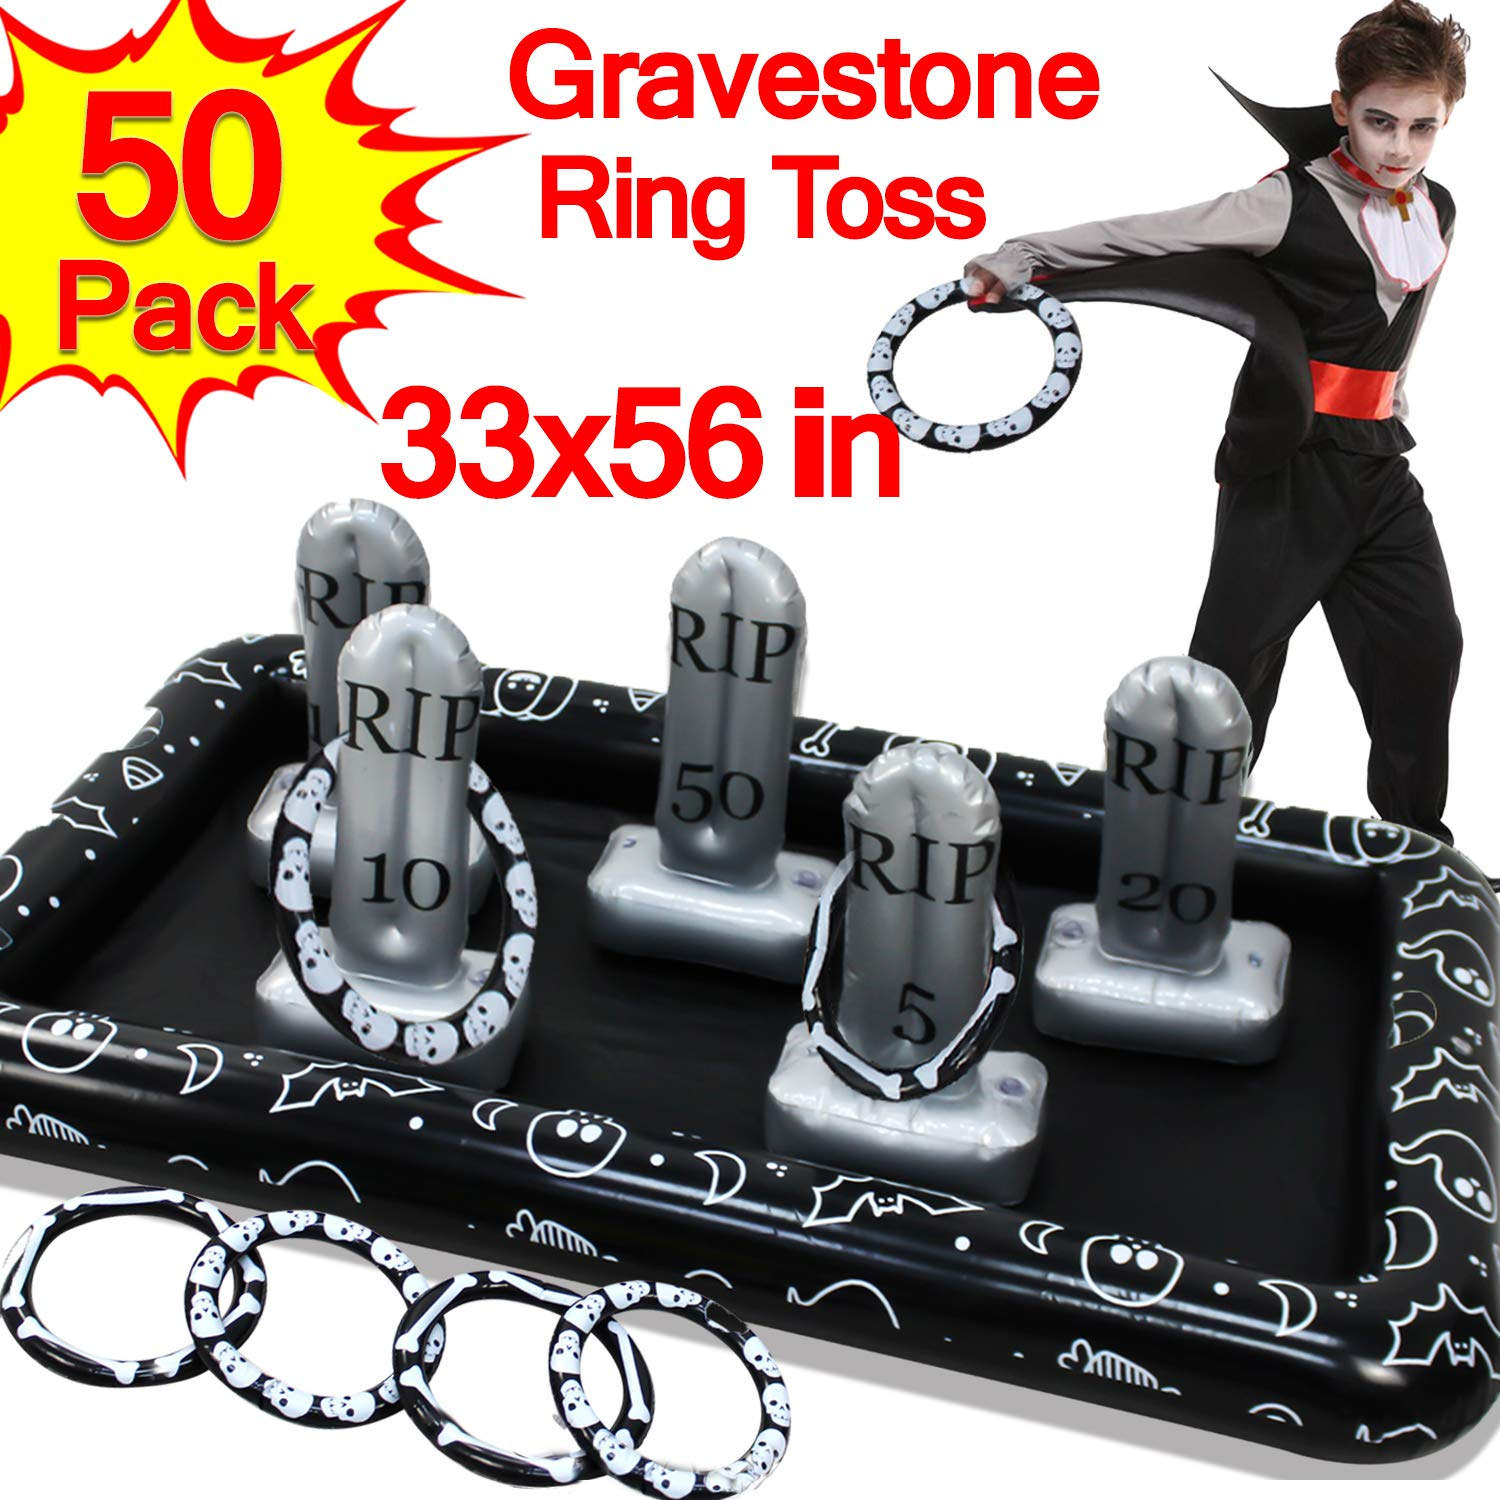 Halloween Party Favors for Kids Blow up 56in Inflatable Spider Tombstone Gravestone Ring Toss Games Headstone Halloween Party Decoration Outdoor Indoor Yard Halloween Creepy Spooky Game Supplies by Camlinbo